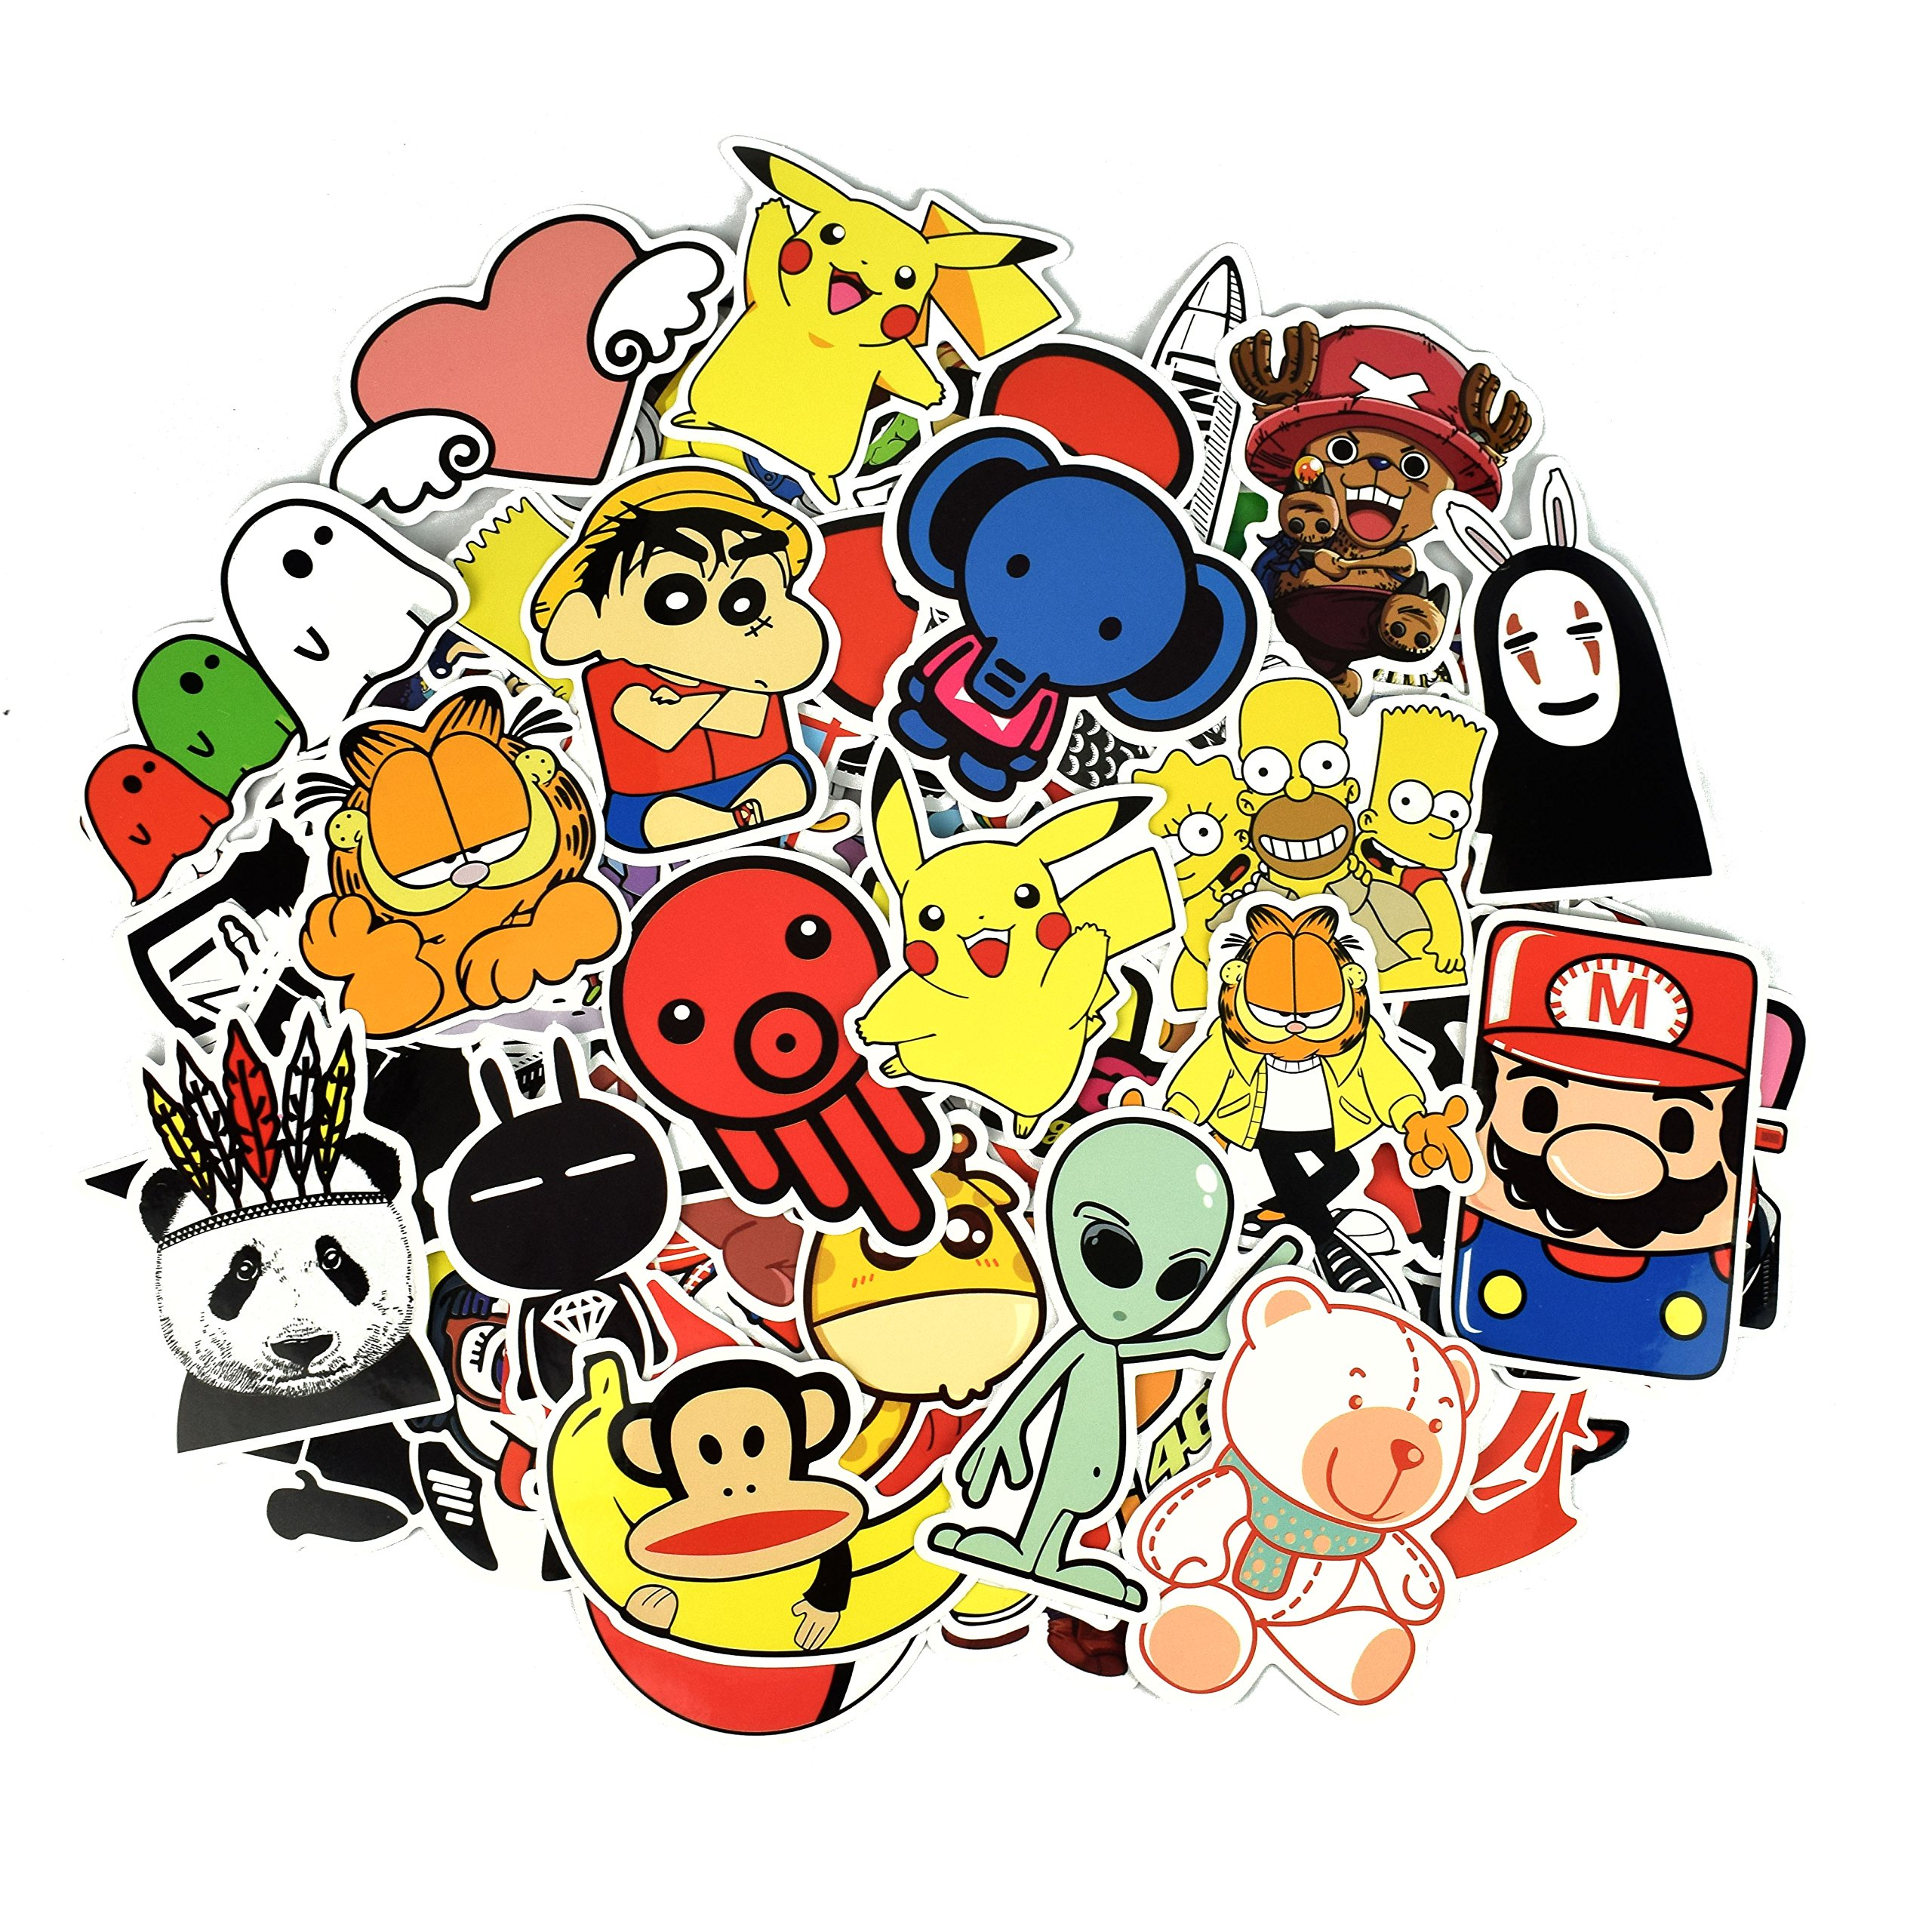 Homerity 100Pcs Stickers Skateboard Stickers Car Stickers Laptop Stickers Random Style Mix Fashion Graffiti Stickers Helmet Luggage Guitar Bike Suitcase Stickers (F)